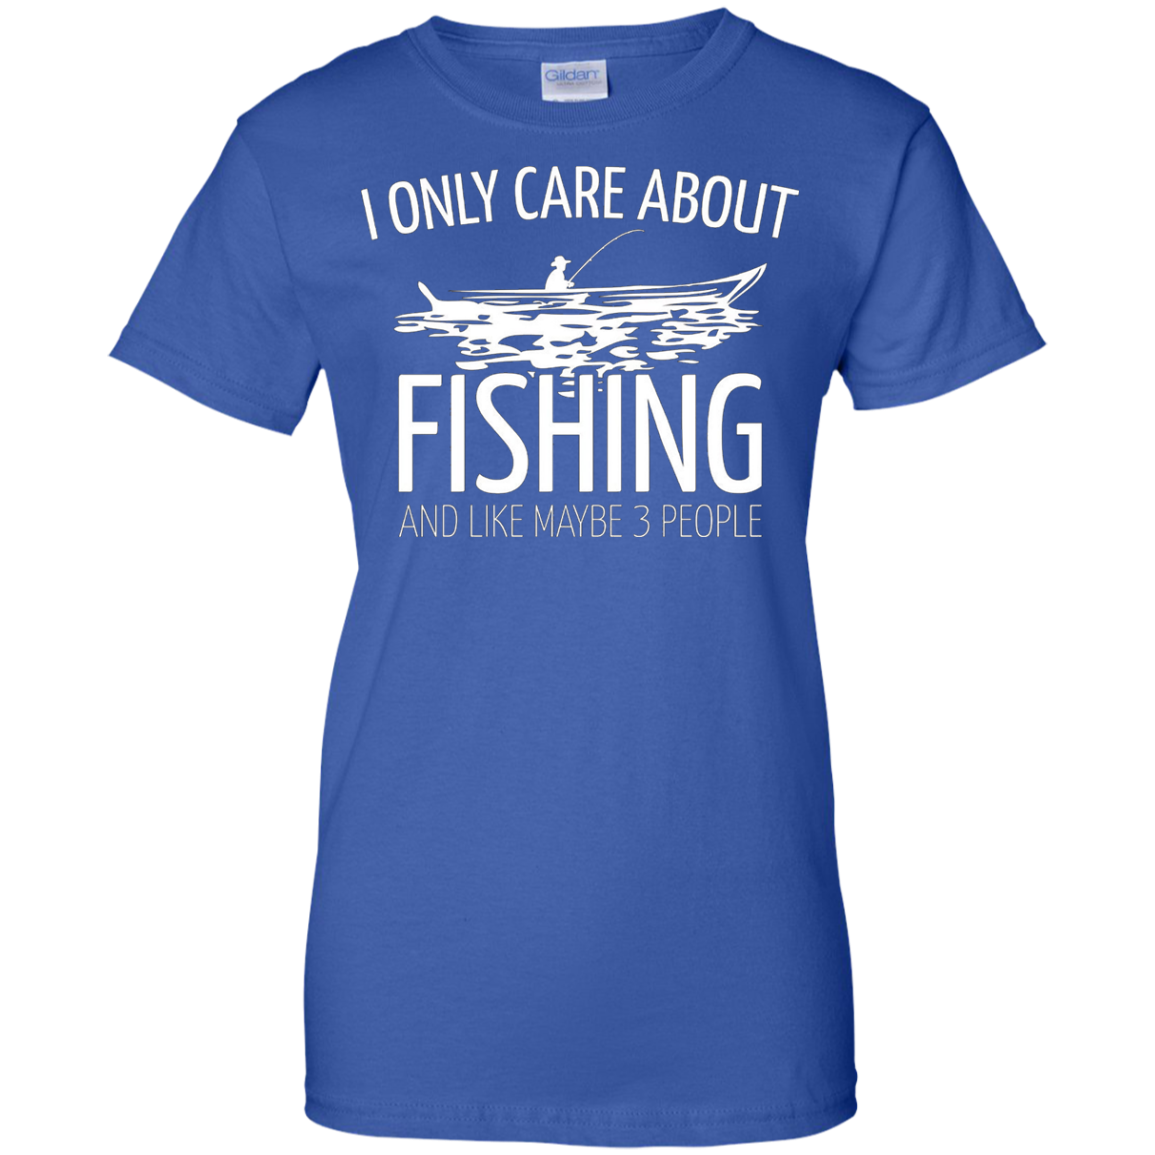 I Only Care About Fishing - Funny Fishing T-Shirts